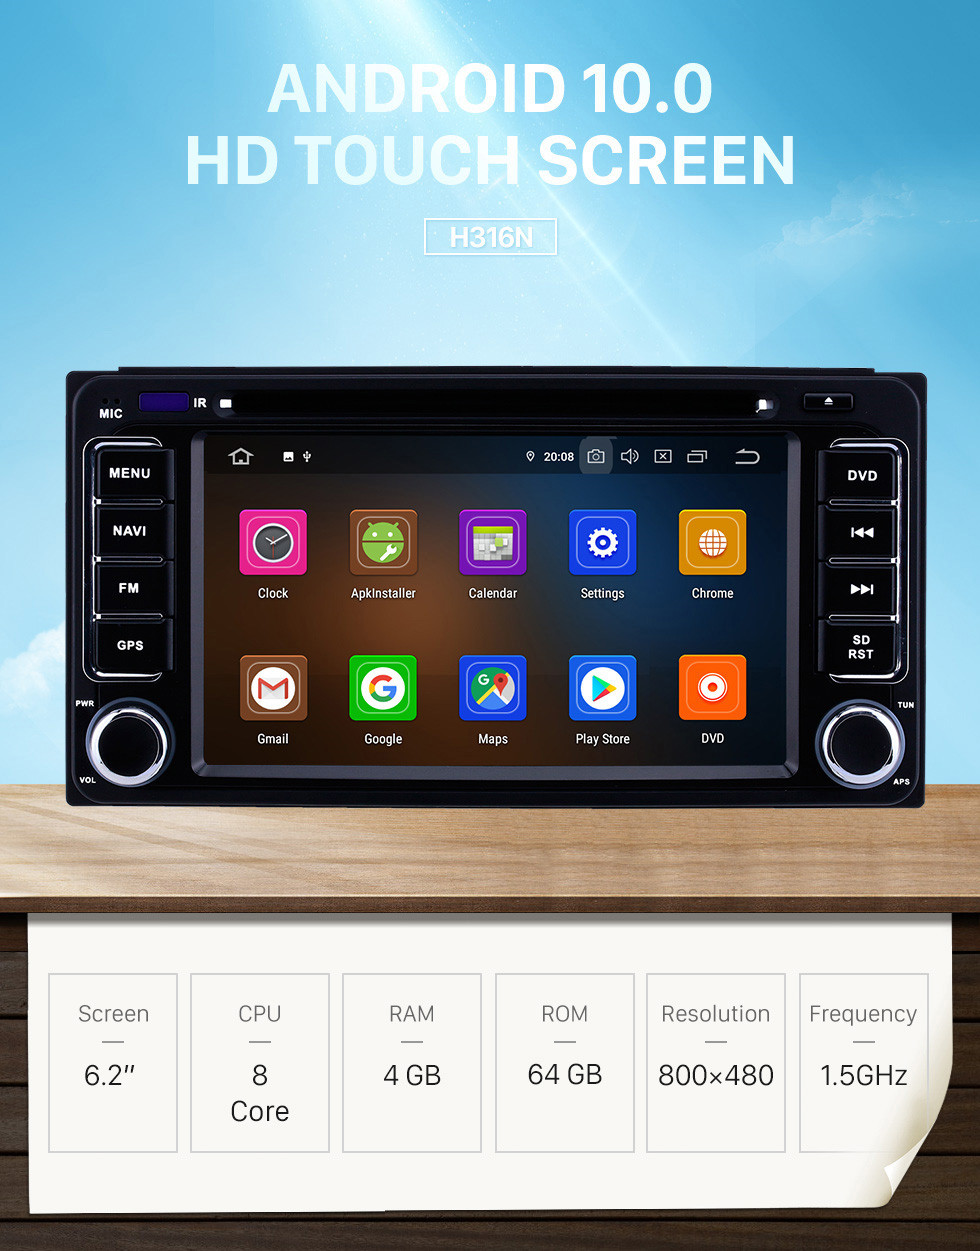 Seicane 6.2 inch Android 10.0 GPS Navigation Radio for 1996-2018 Toyota Corolla Auris Fortuner Estima Innova with HD Touchscreen Carplay Bluetooth WIFI support OBD2 1080P